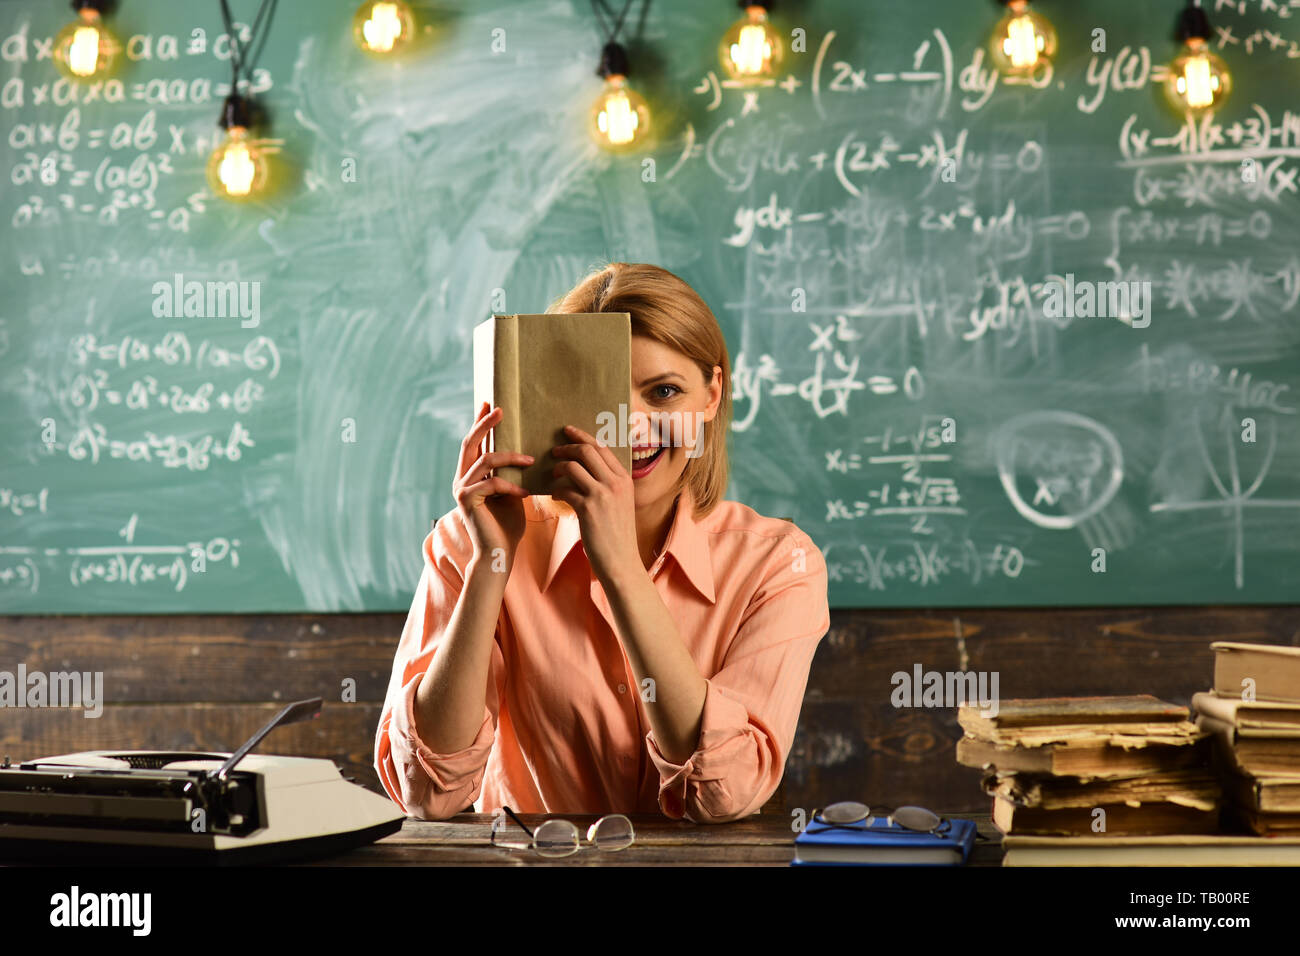 publicist woman hold book at school. publicist search information in book - Stock Image